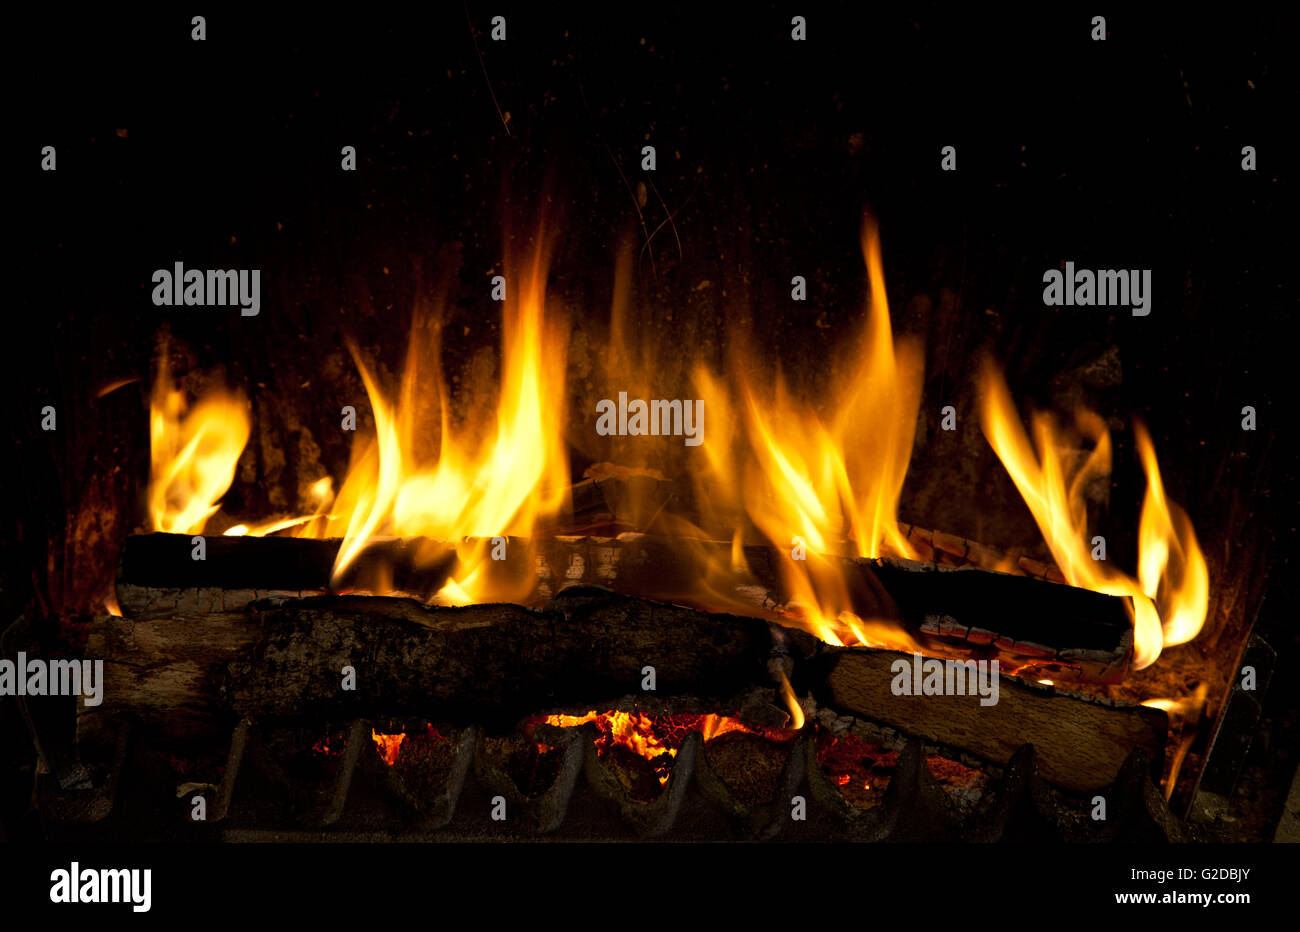 Burning And Glowing Pieces Of Wood In Fireplace Stock Photo